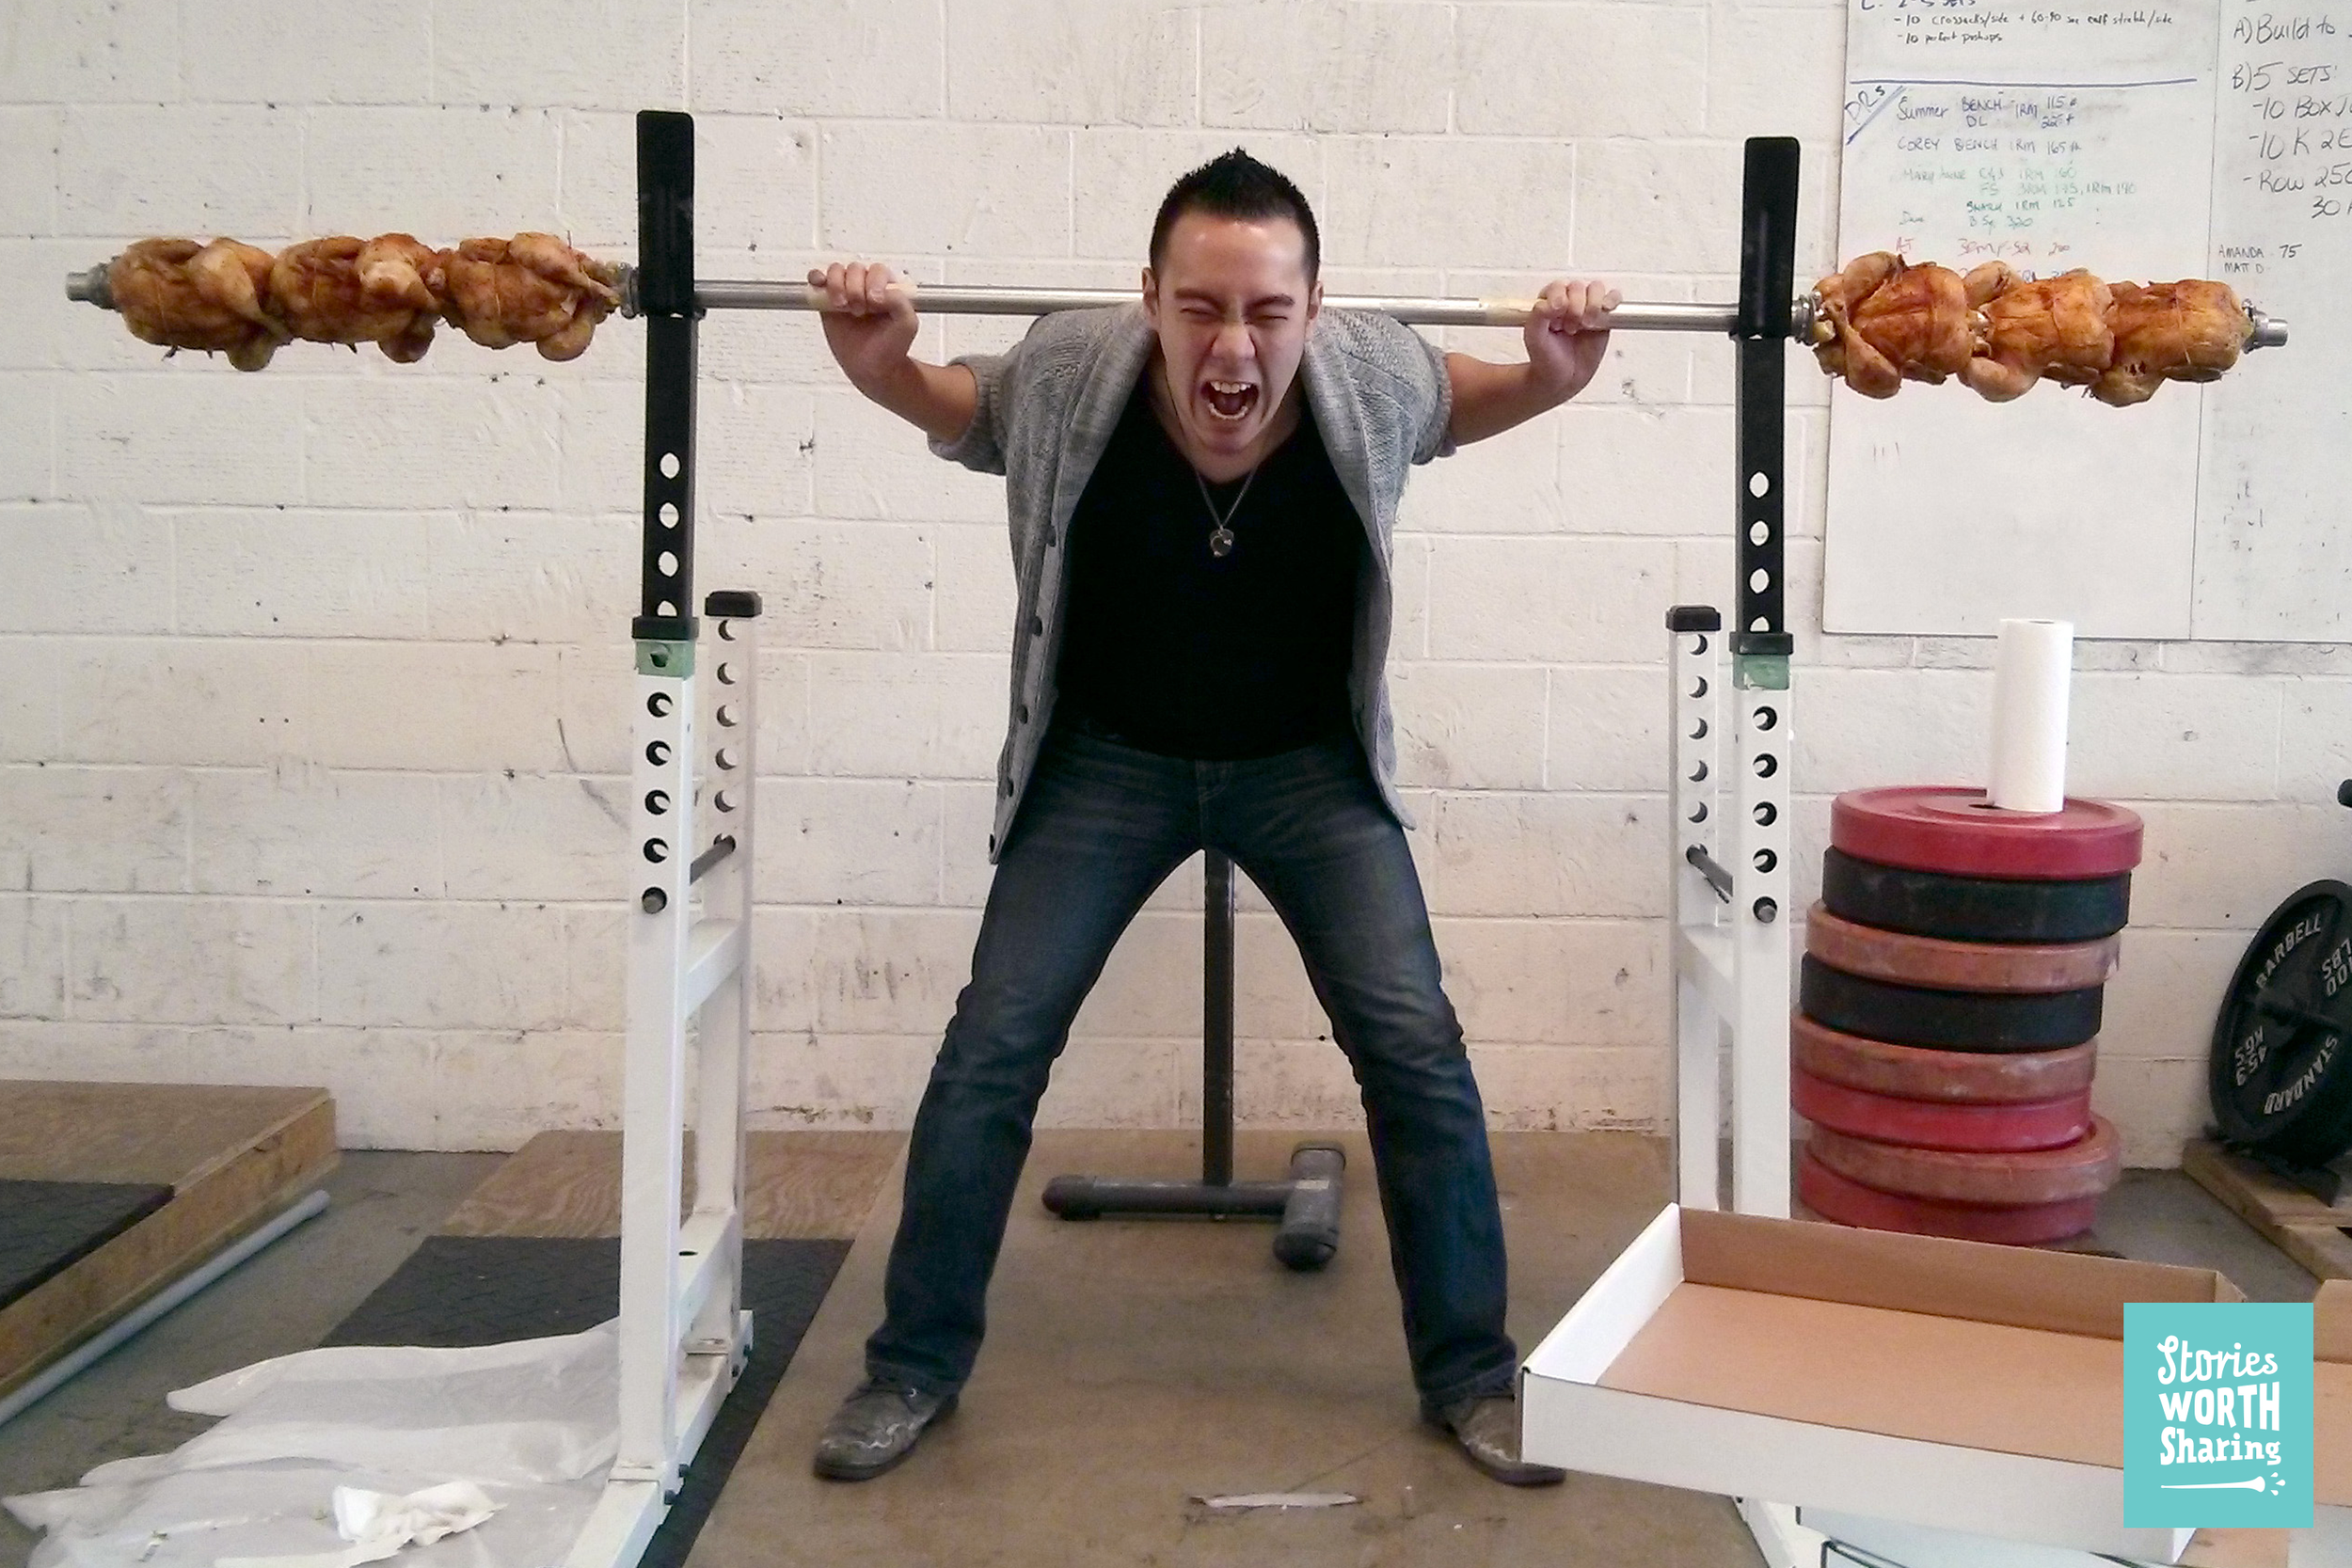 Our creative director, Chun, lifting six rotisserie chickens on a barbell